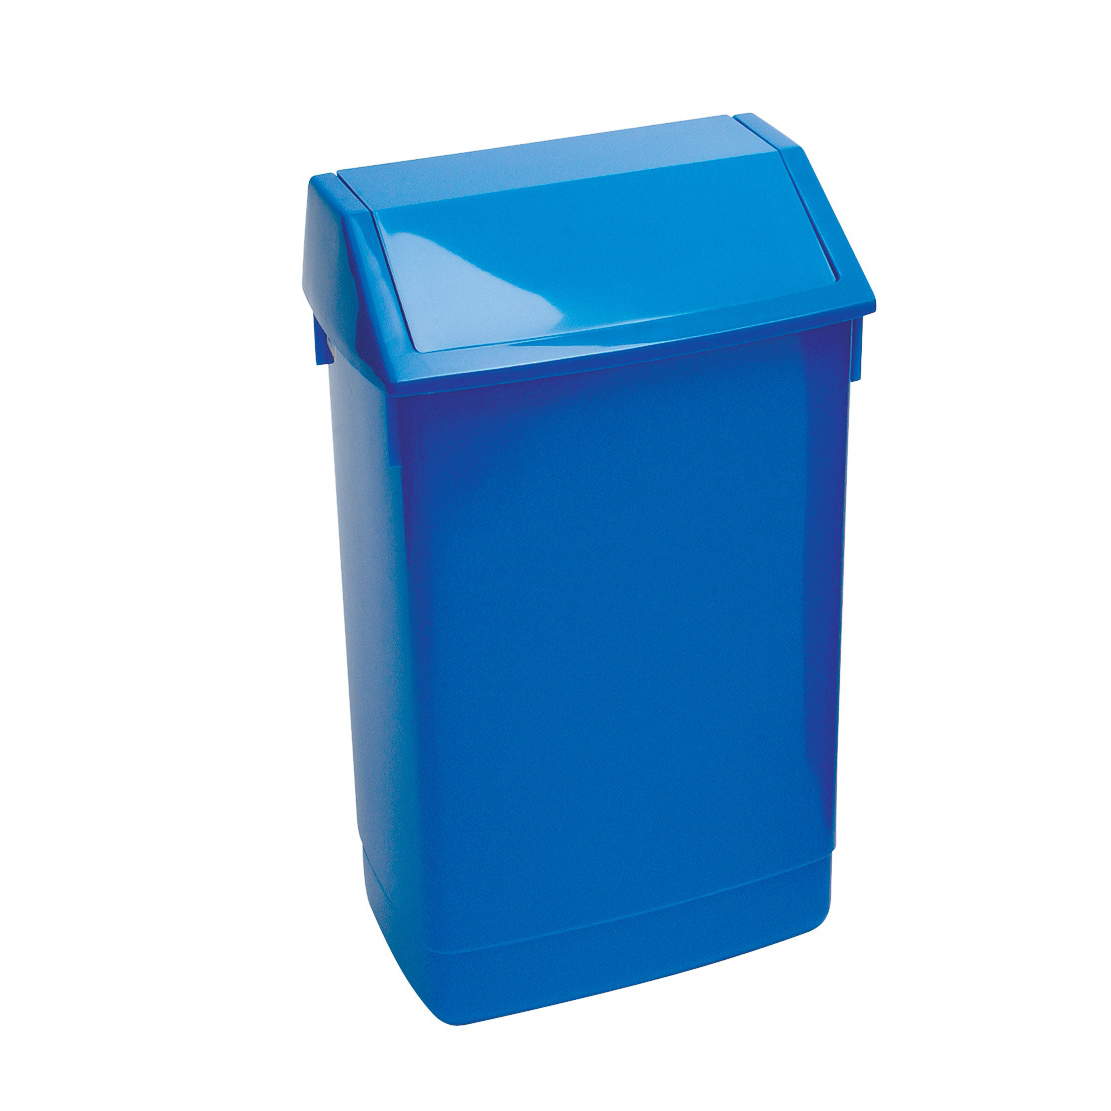 Rubbish Bins Flip Top Bin Composite Plastic 60 Litres Blue